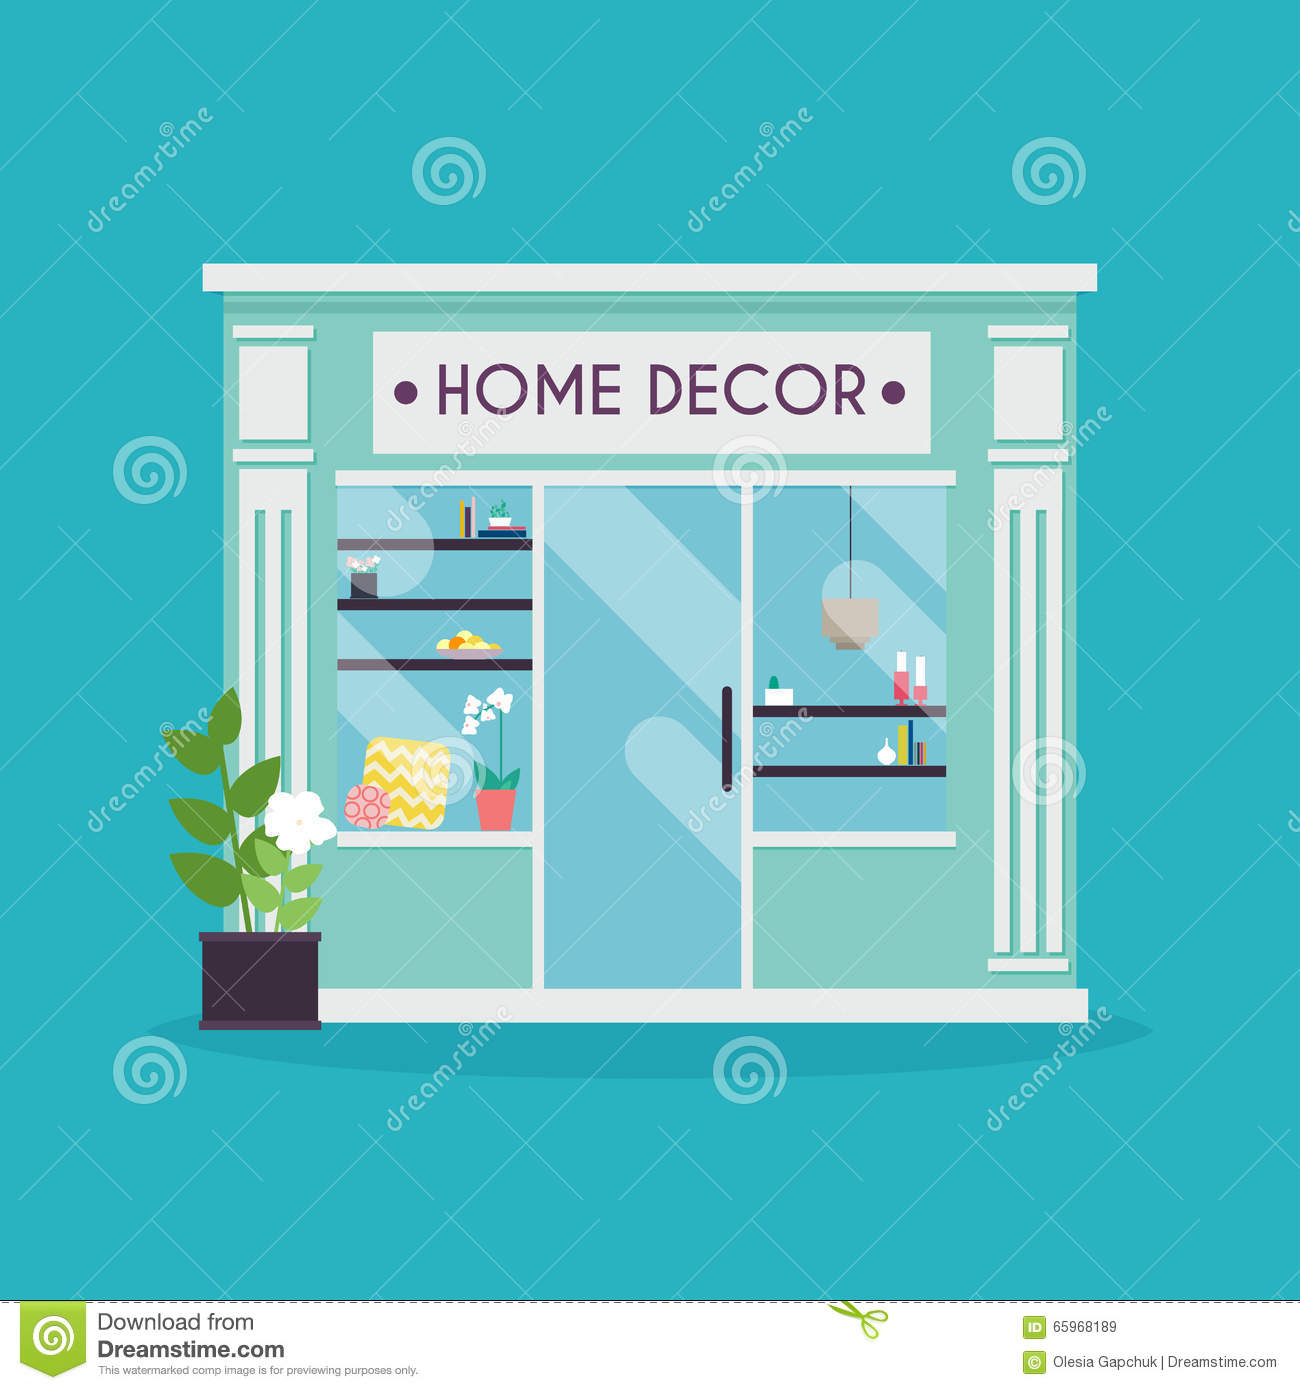 Home Decor Facade. Decor Shop. Ideal For Market Business